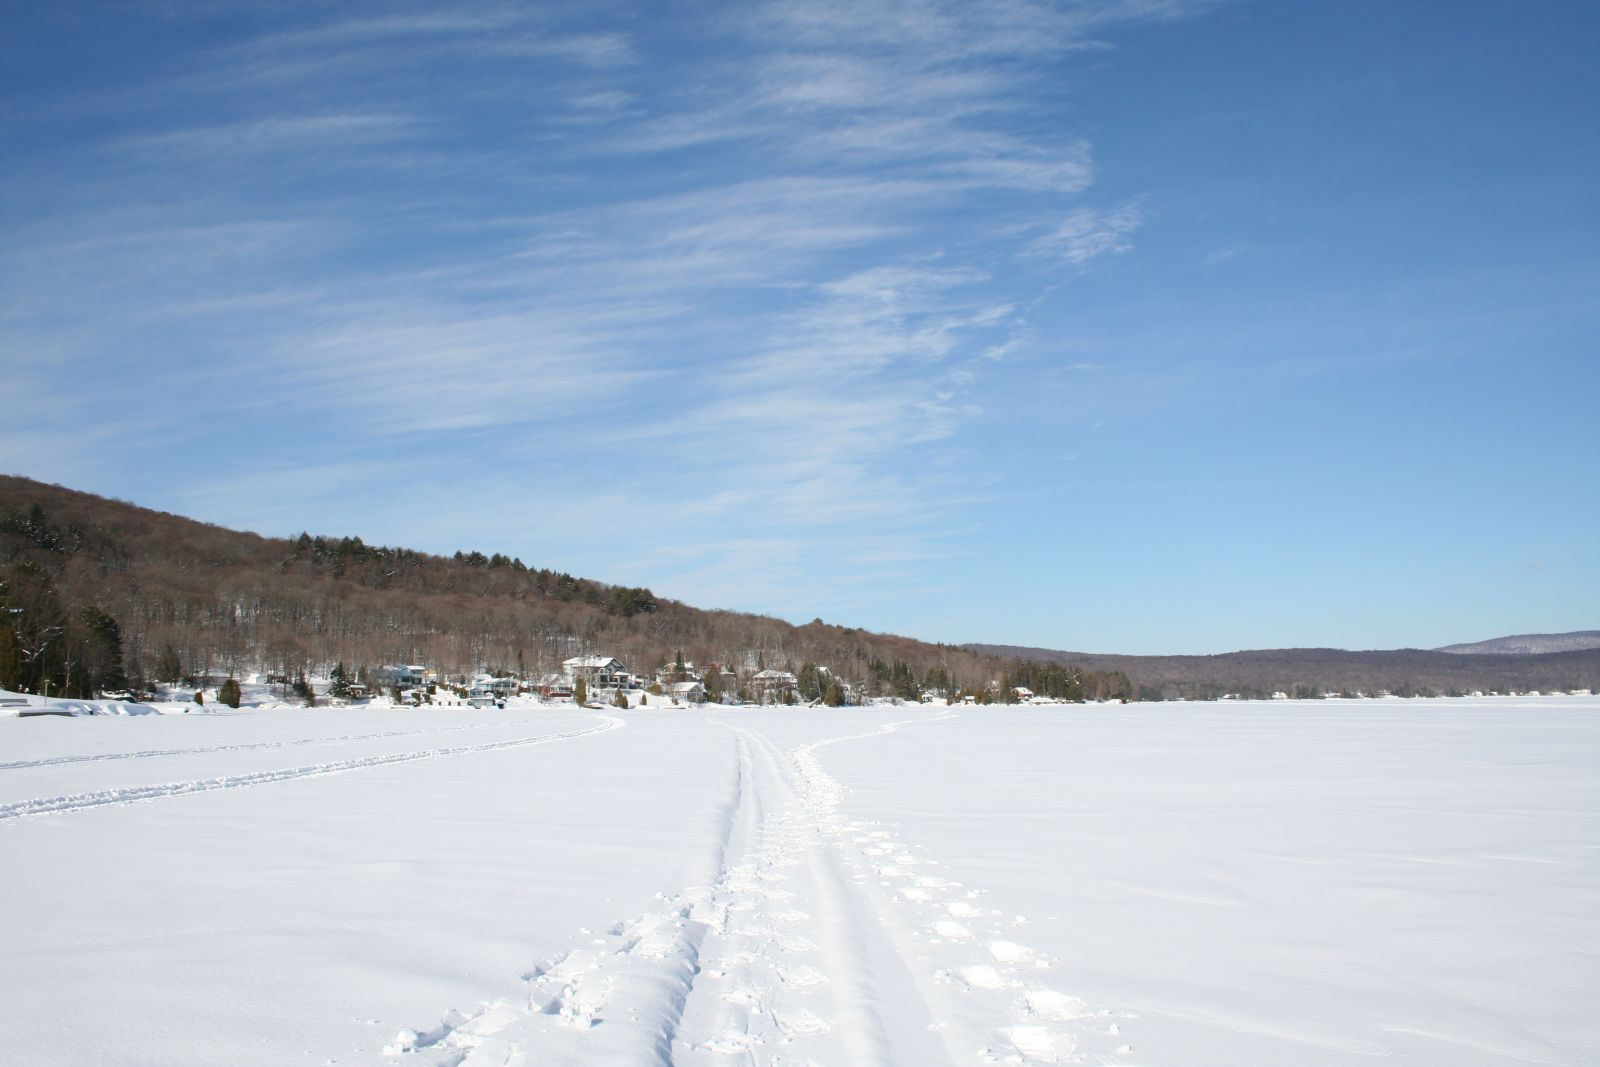 Picturesque Snow Scenery with Footprints